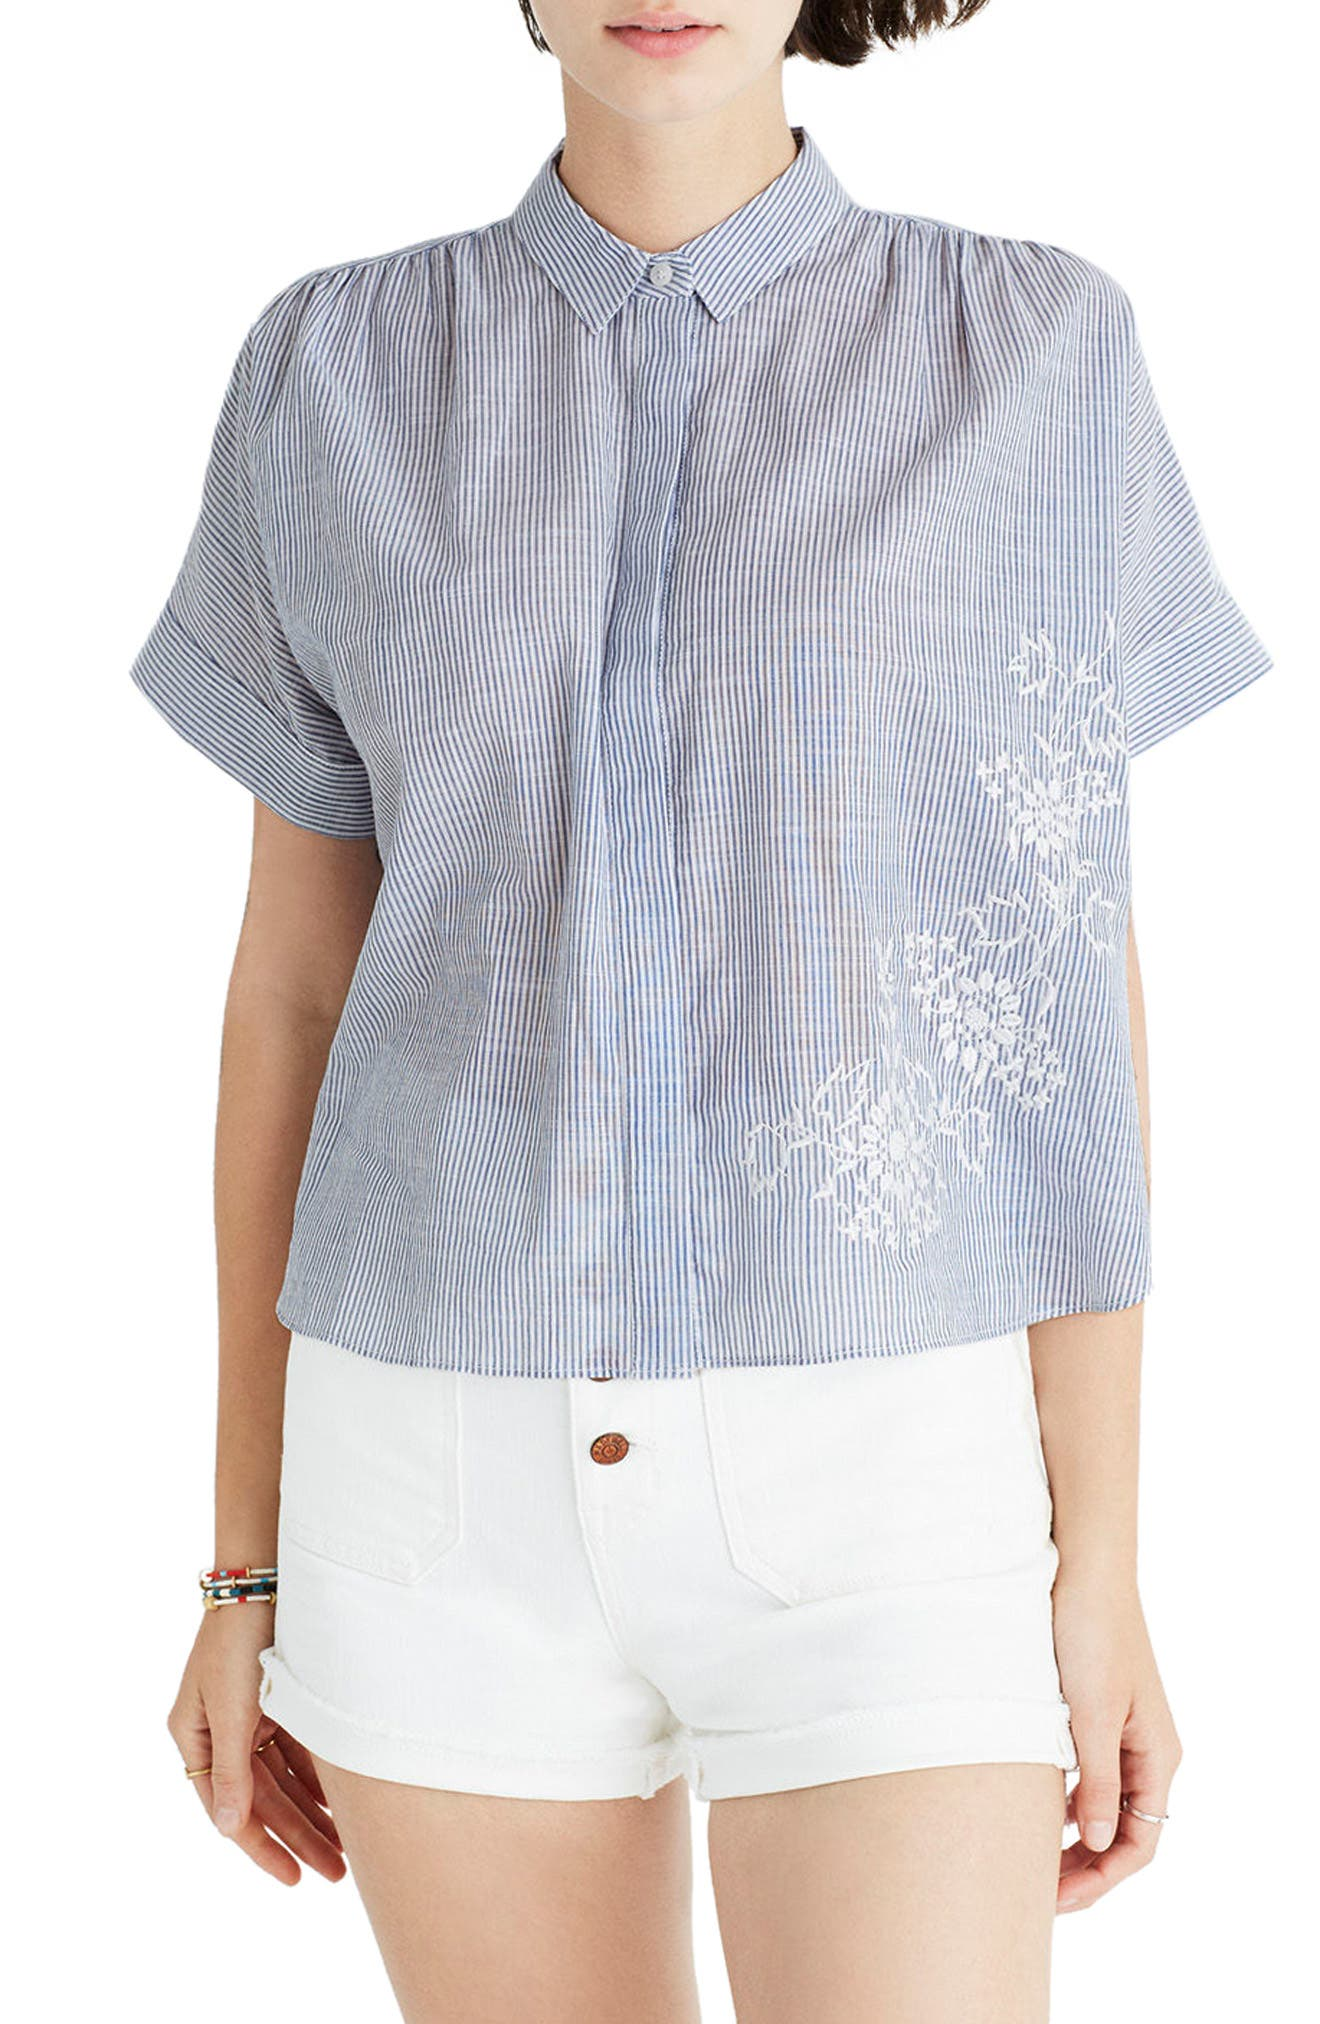 MADEWELL,                             Embroidered Hilltop Shirt,                             Main thumbnail 1, color,                             400